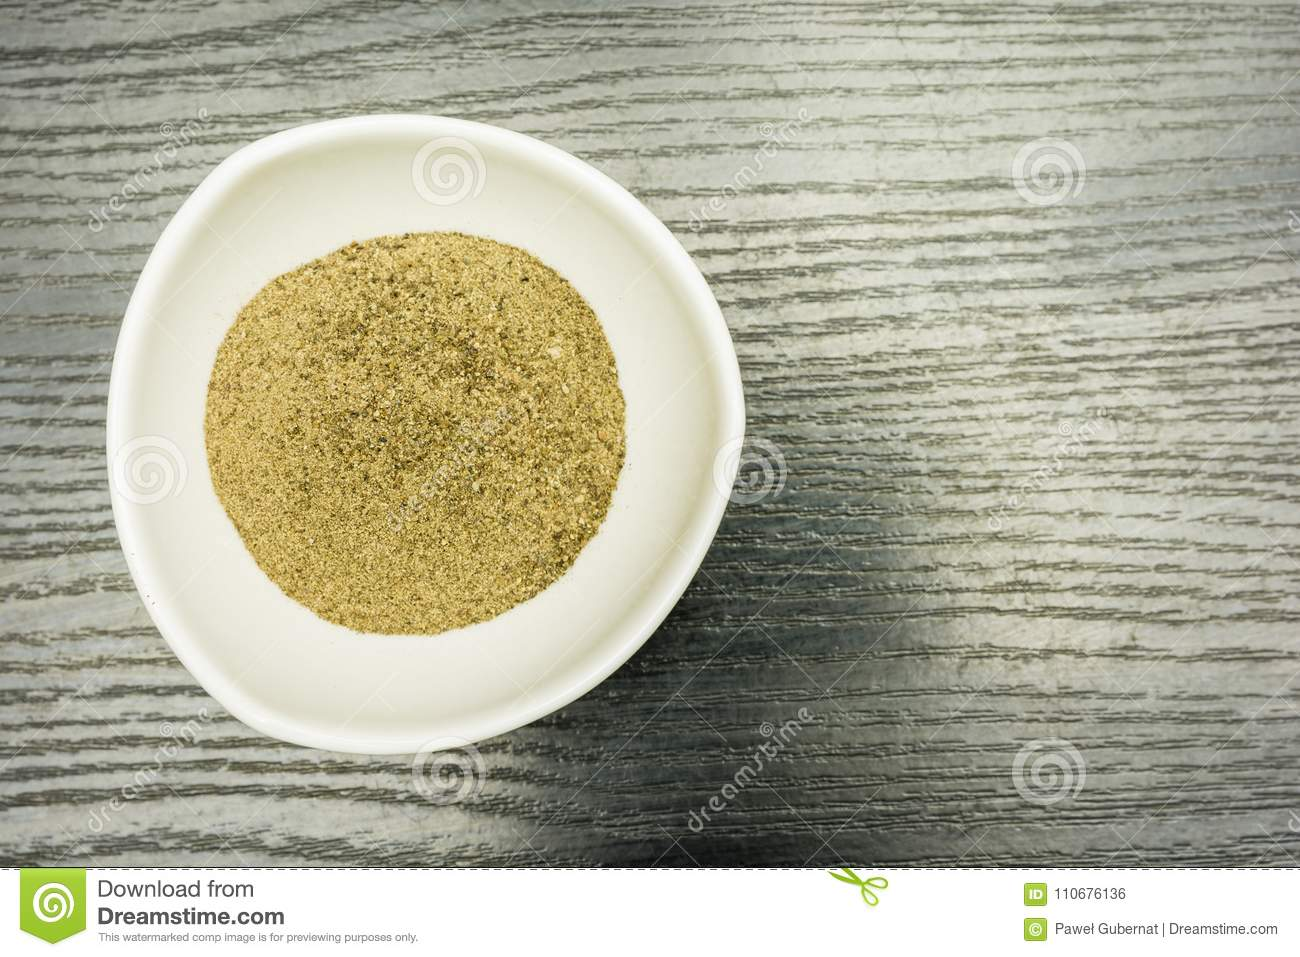 Ground black pepper in a bowl. View from above.